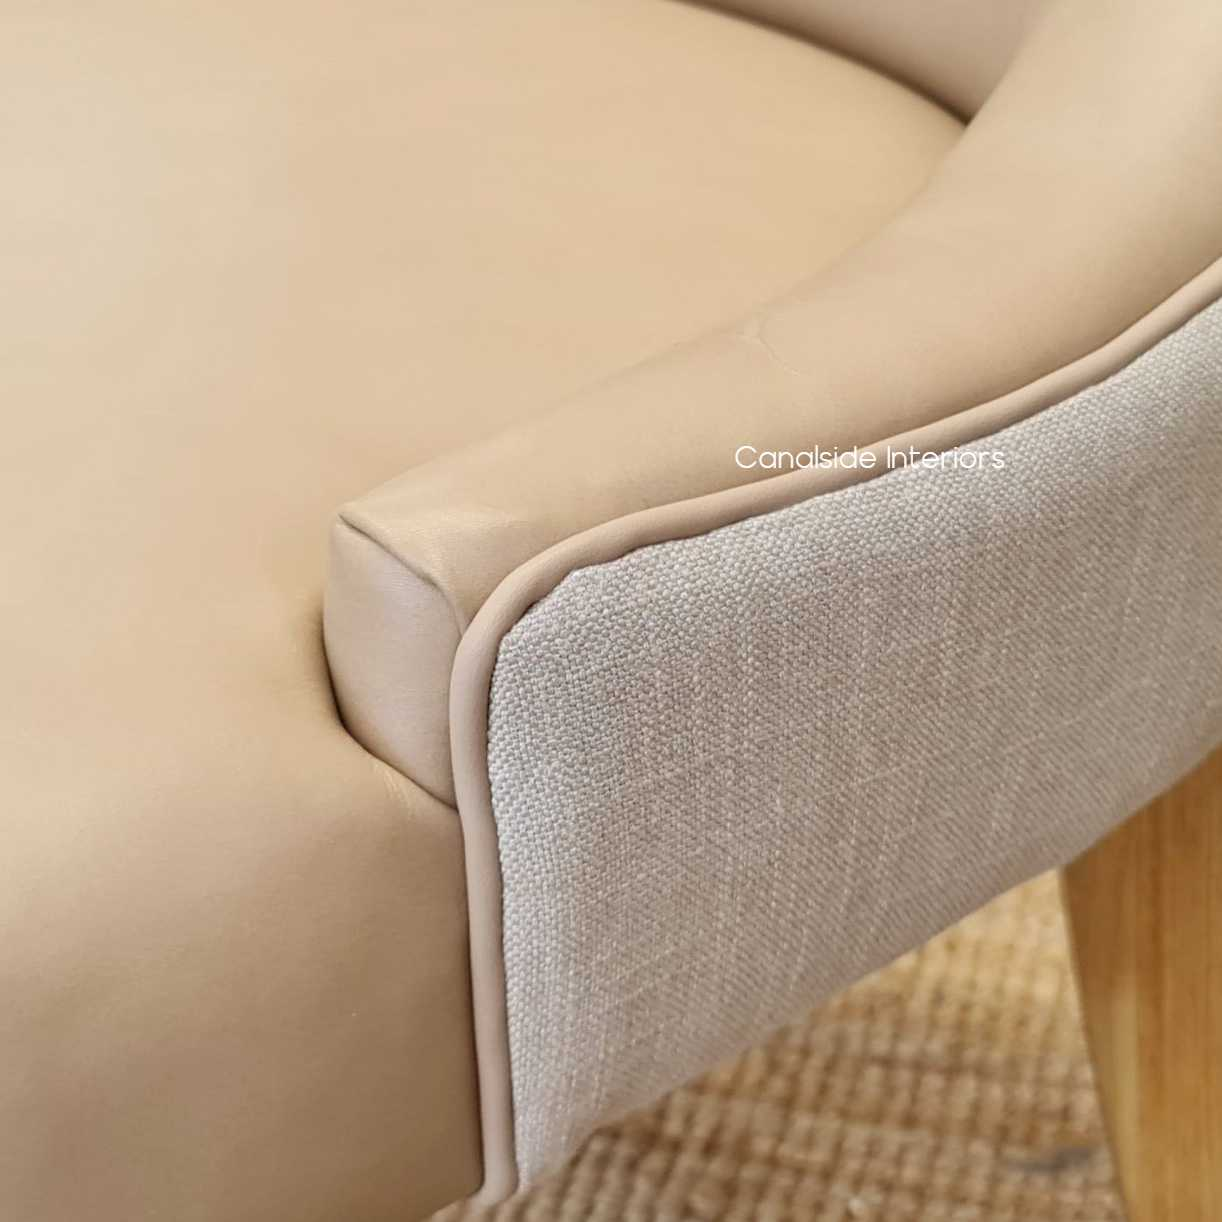 Aston Leather Linen Dining Chair natural legs base, CHAIRS, HAMPTONS Style, PLANTATION Style, CHAIRS Dining, kitchen, dining room, classic, timeless